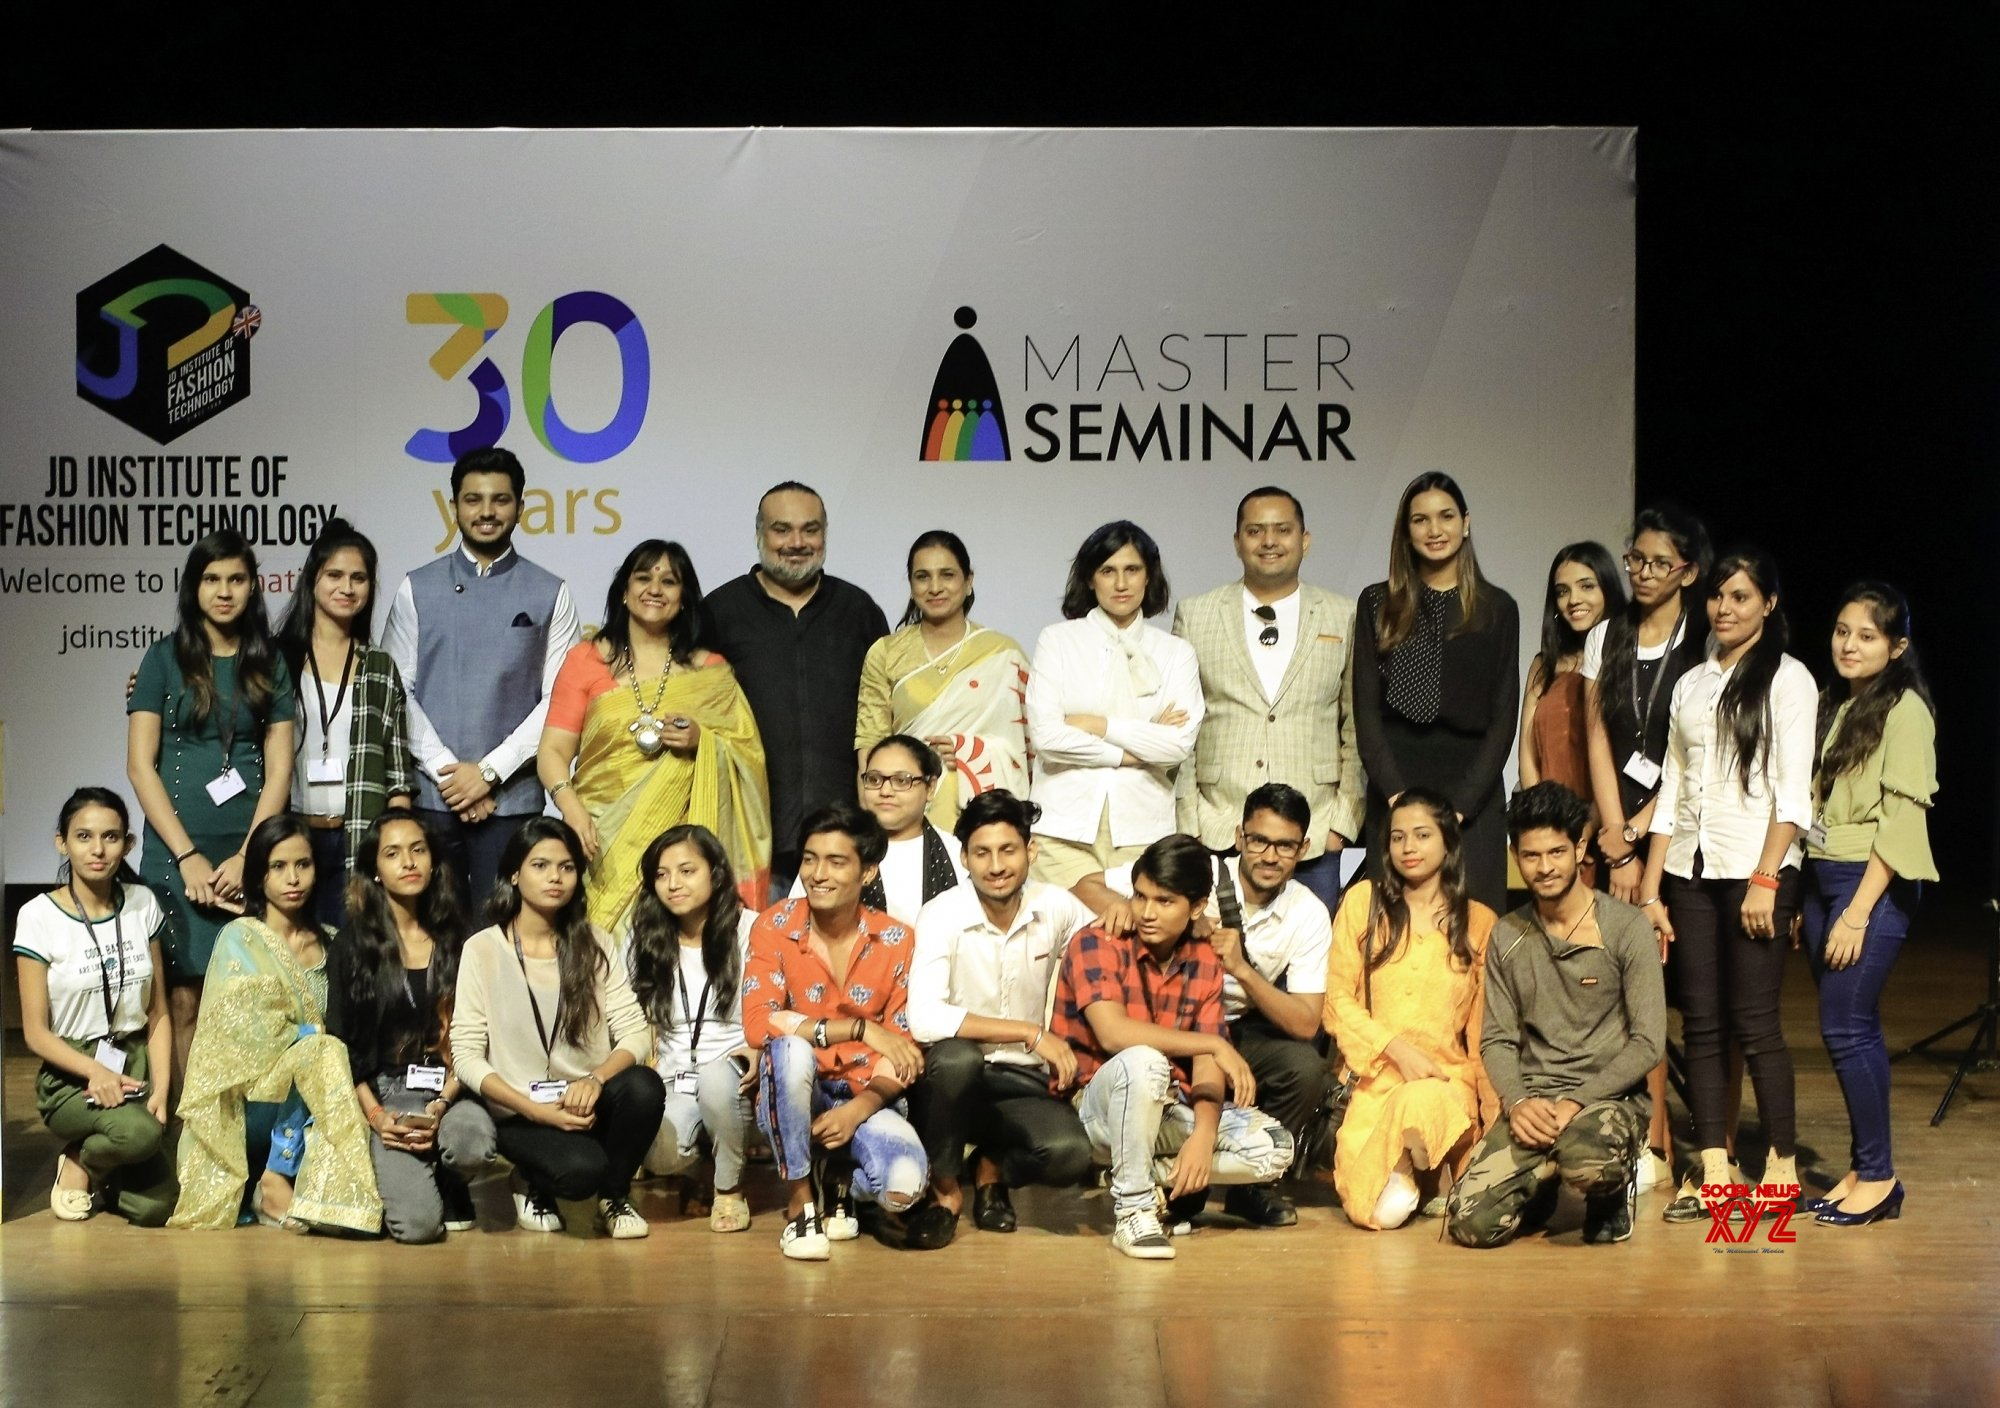 New Delhi Master Seminar At Jd Institute Of Fashion Technology Gallery Social News Xyz